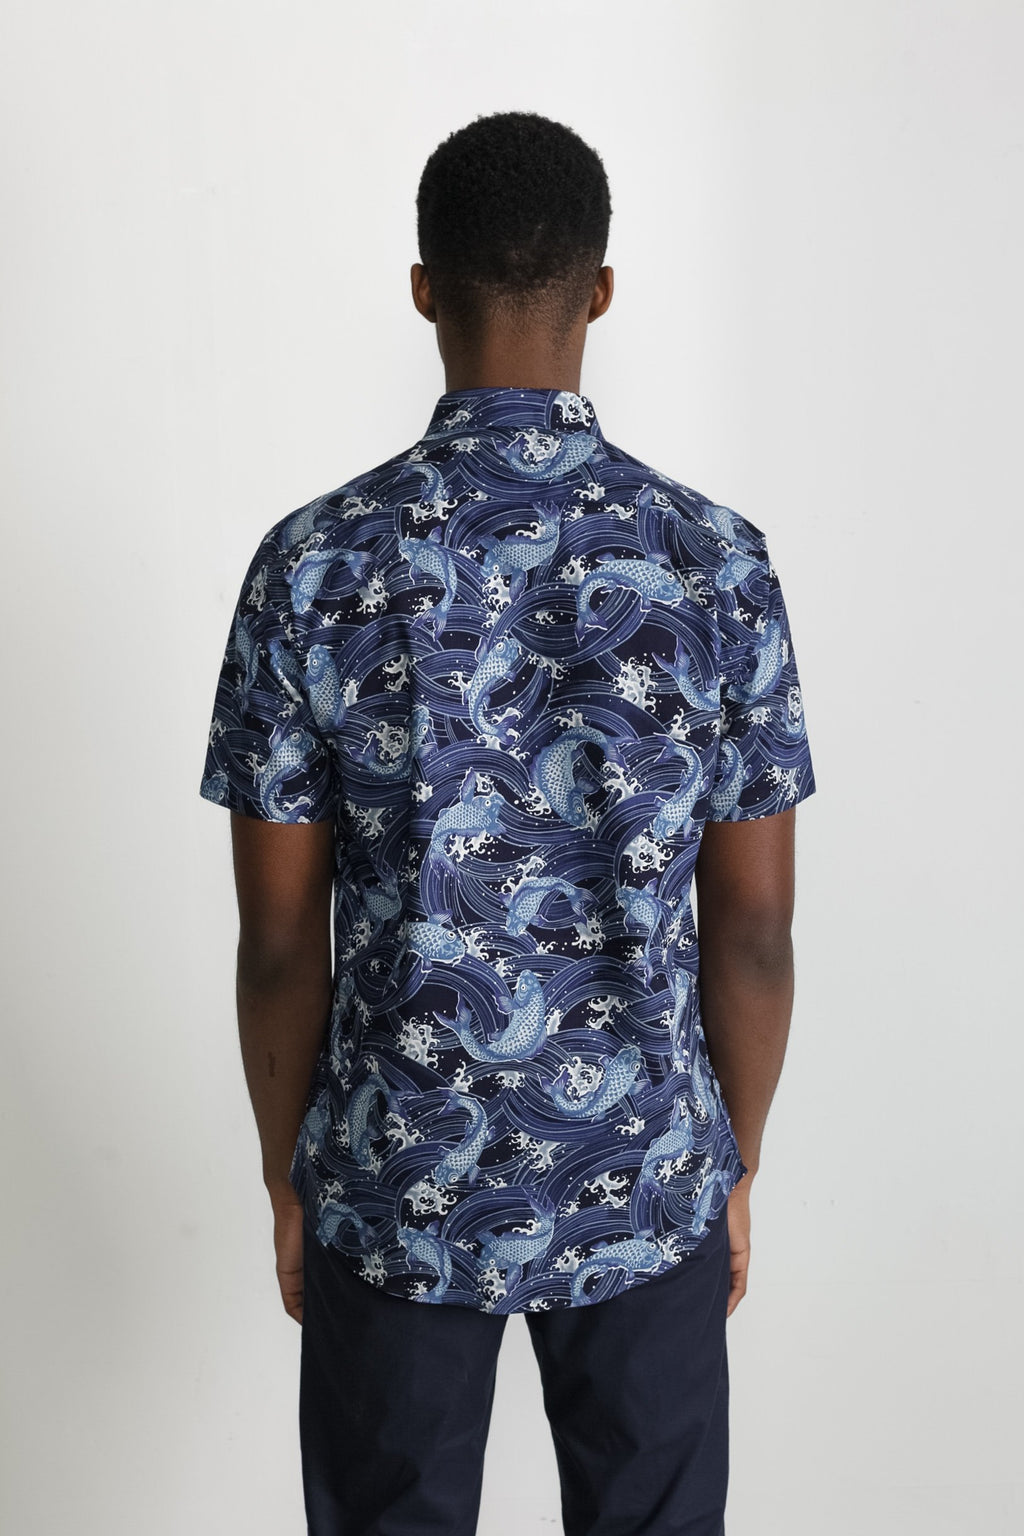 Japanese Koi Print in Navy 005